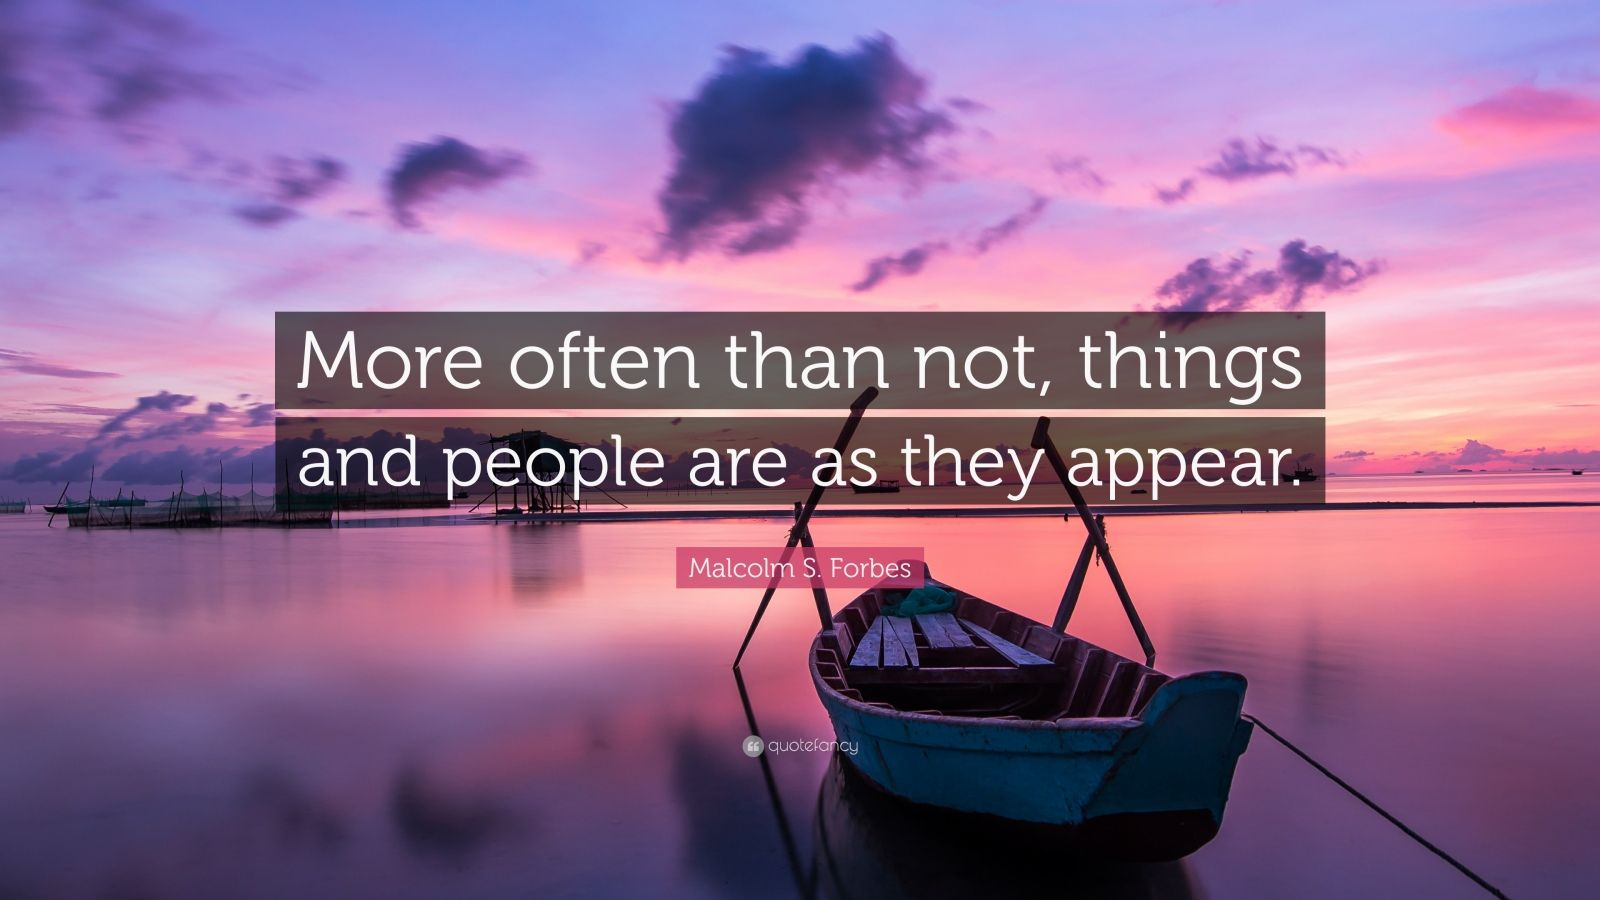 """Malcolm S. Forbes Quote: """"More often than not, things and people are as they appear."""""""